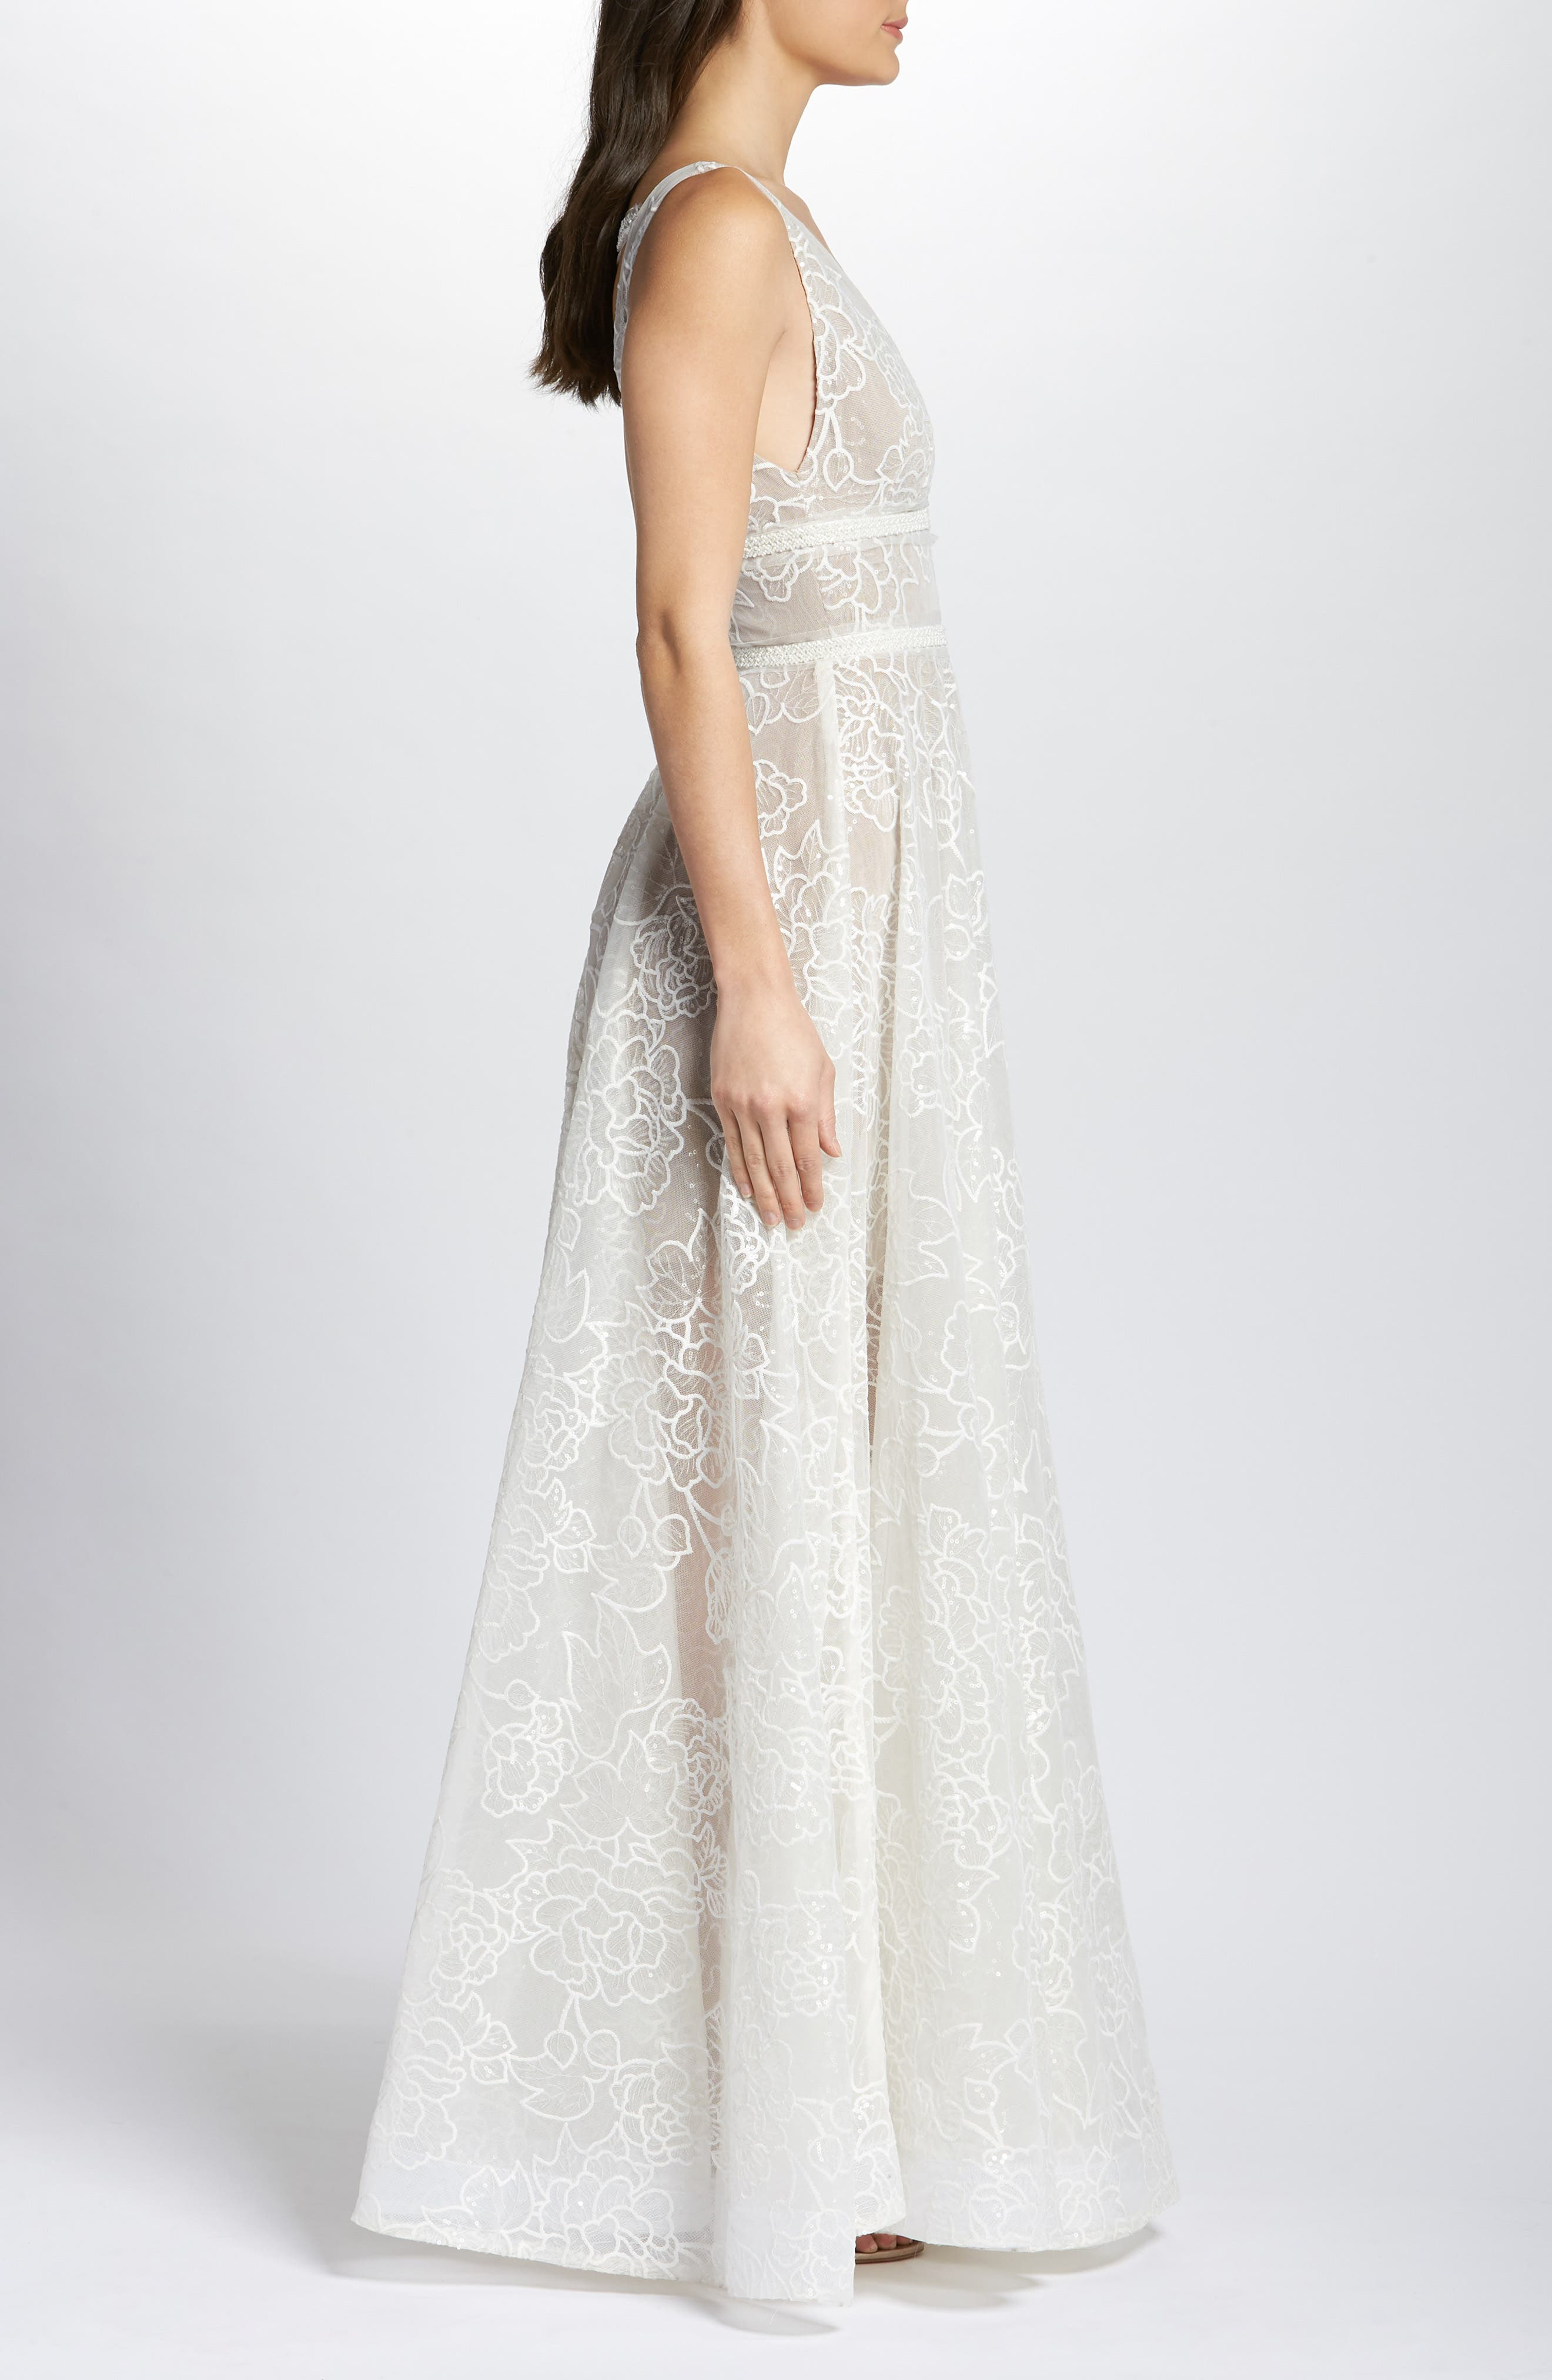 BRONX AND BANCO,                             Emily Floral Tulle A-Line Wedding Dress,                             Alternate thumbnail 3, color,                             900